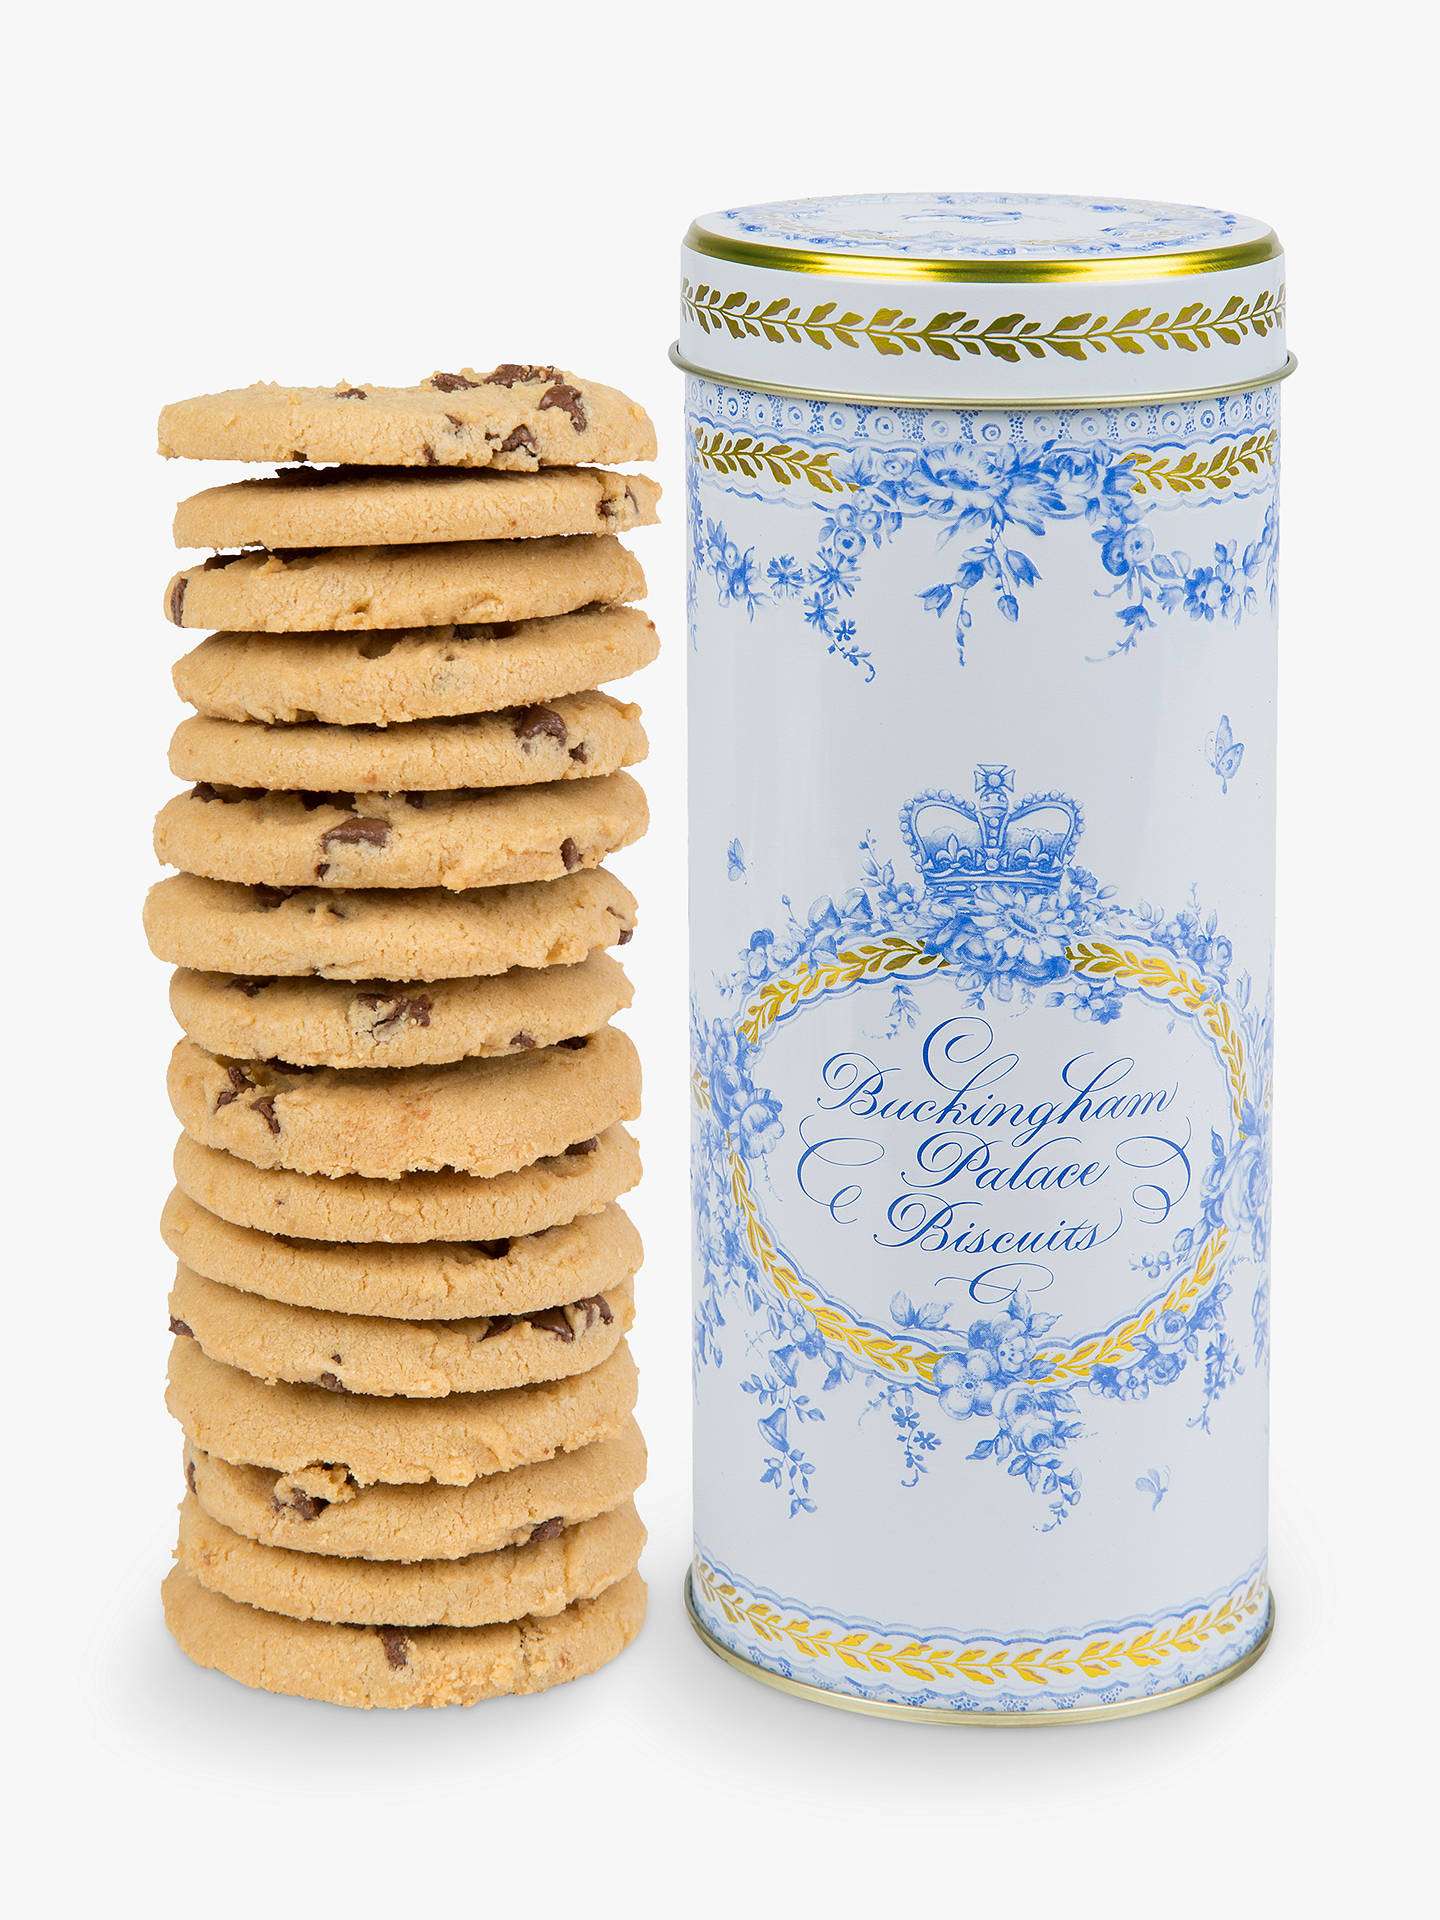 BuyRoyal Collection Buckingham Palace Biscuits, 250g Online at johnlewis.com